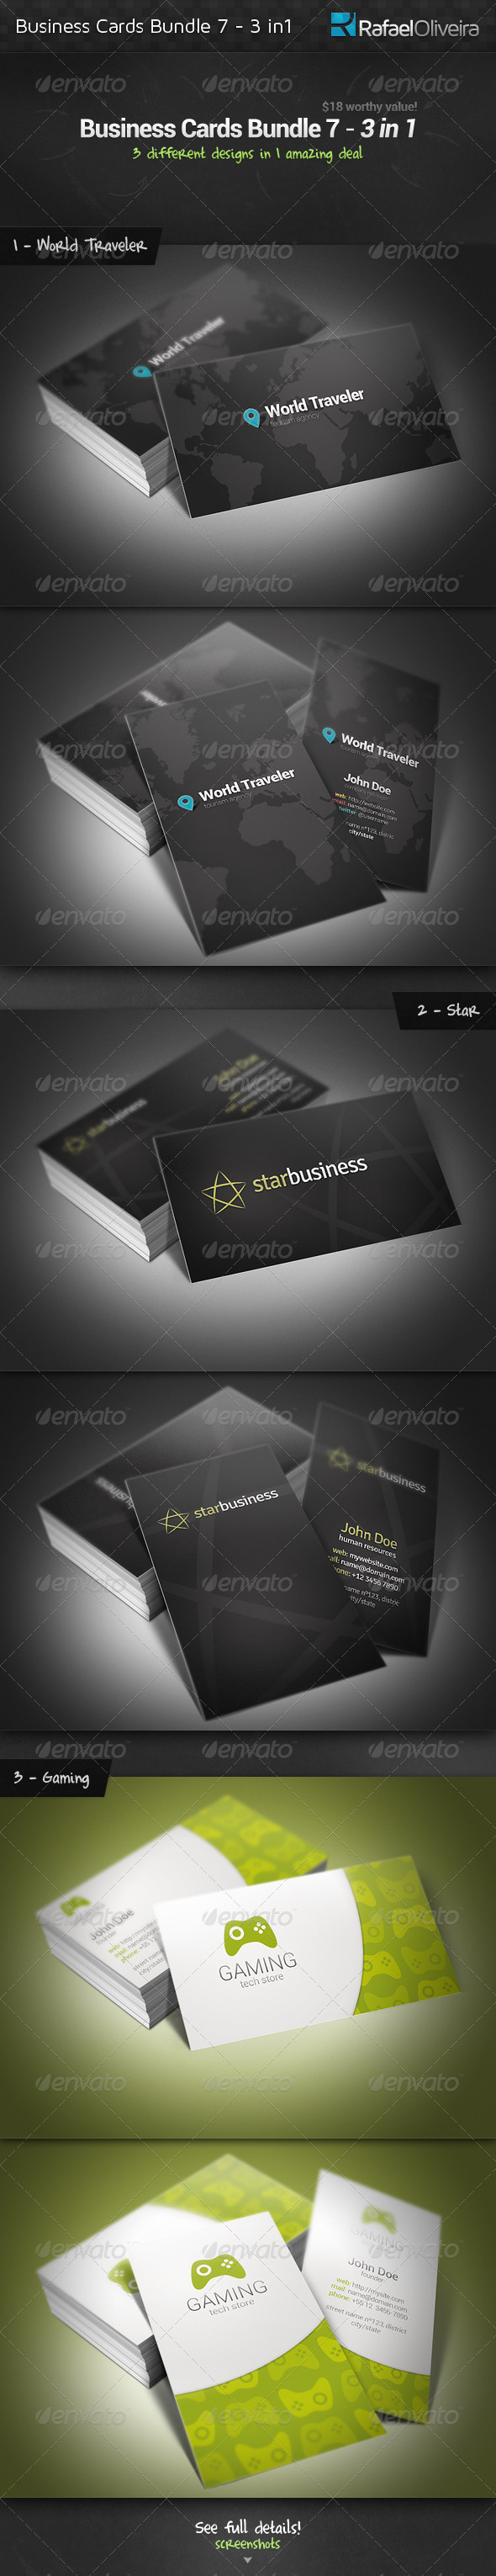 GraphicRiver Business Cards Bundle 7 3 in 1 3742742